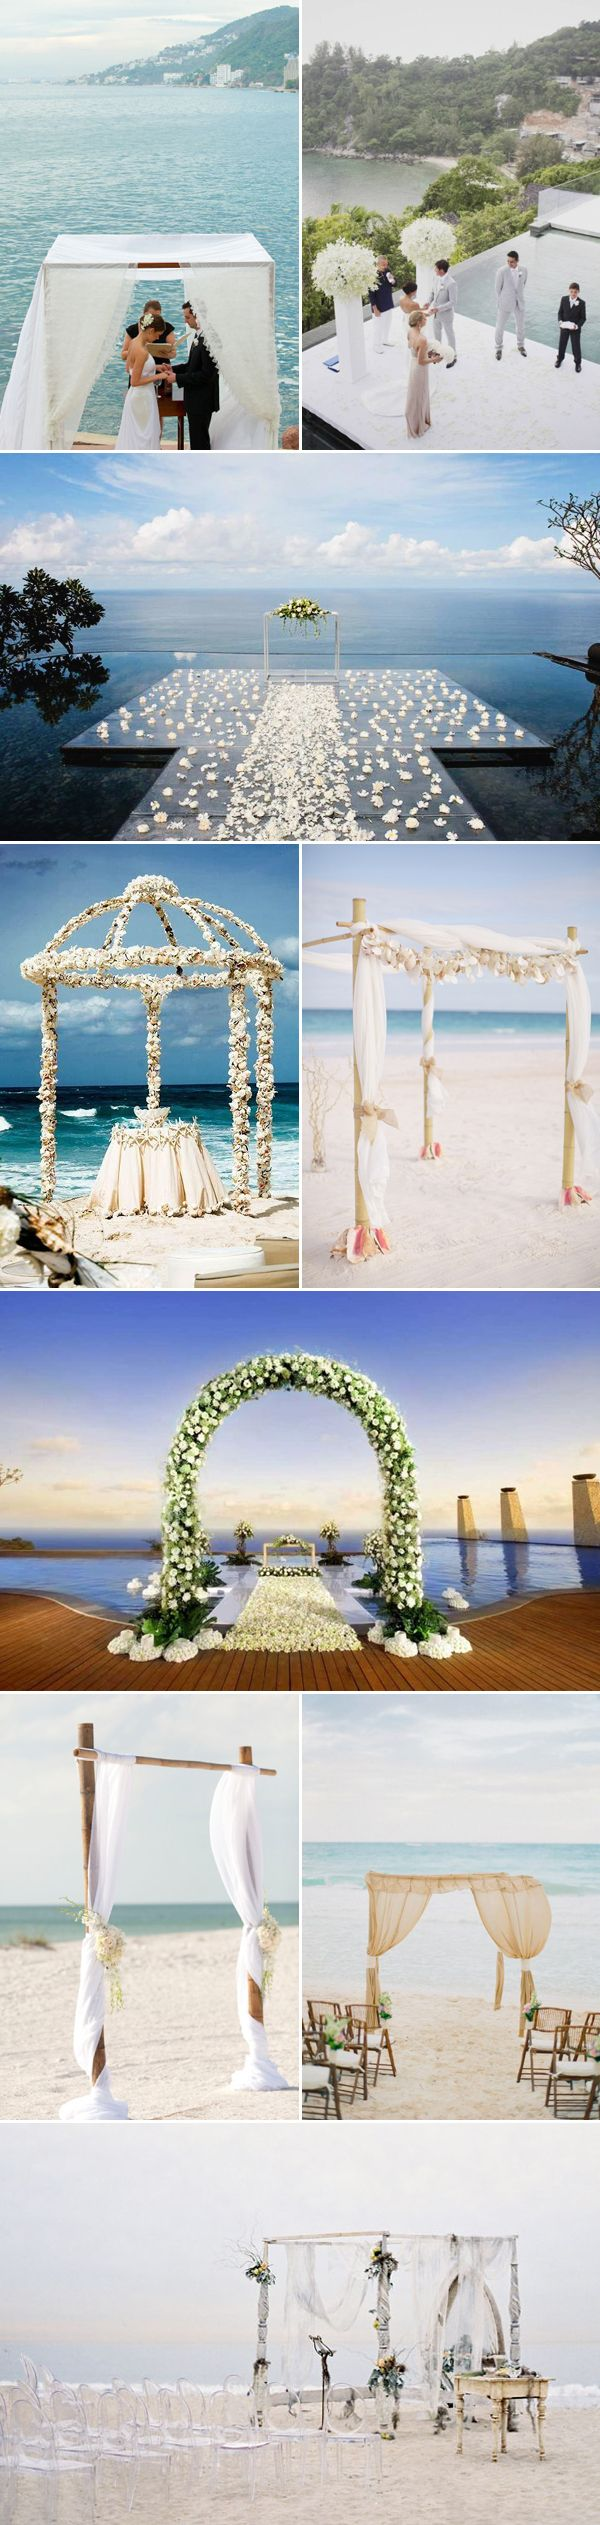 32 OhSoRomantic Summer Wedding Altar Ideas is part of Wedding - There are many possibilities when it comes to choosing your altar arrangement and decoration to match your wedding theme  Here are some of our favorite ideas for summer wedding ceremonies  Whether you are relying on the spoils of nature, designing it yourself, or seeking help from a professional, these altar designs are sure to inspire …